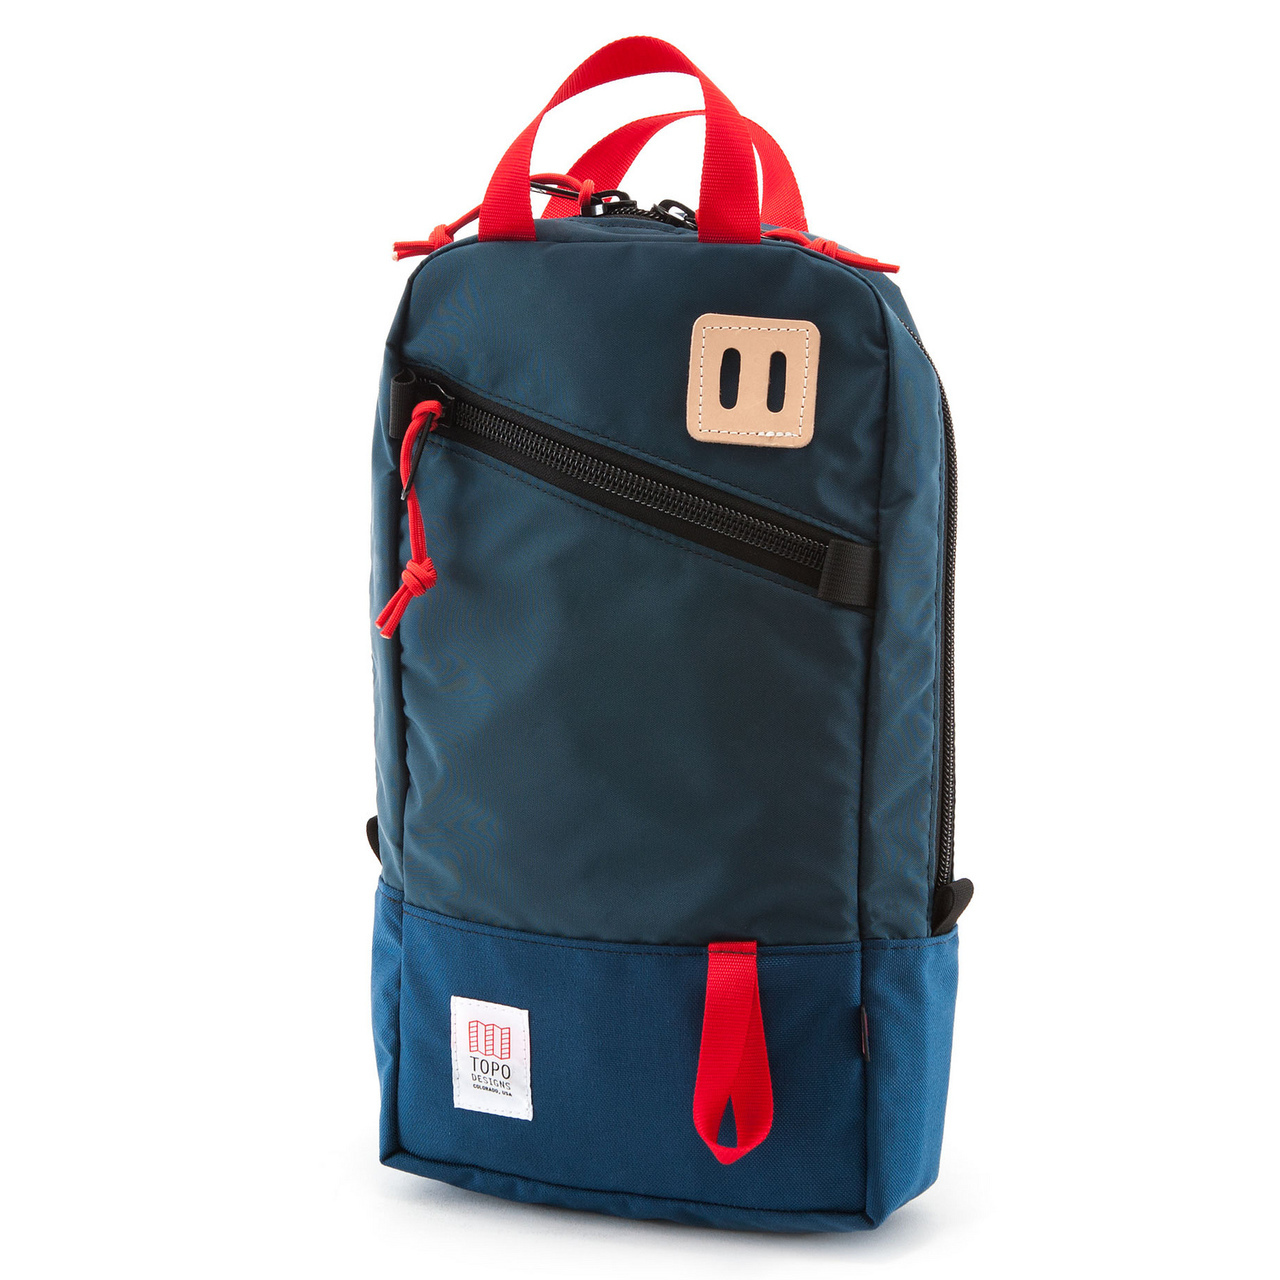 Topo-Designs-Trip-Pack-Navy-1__84460.1493691081.1280.1280.jpg